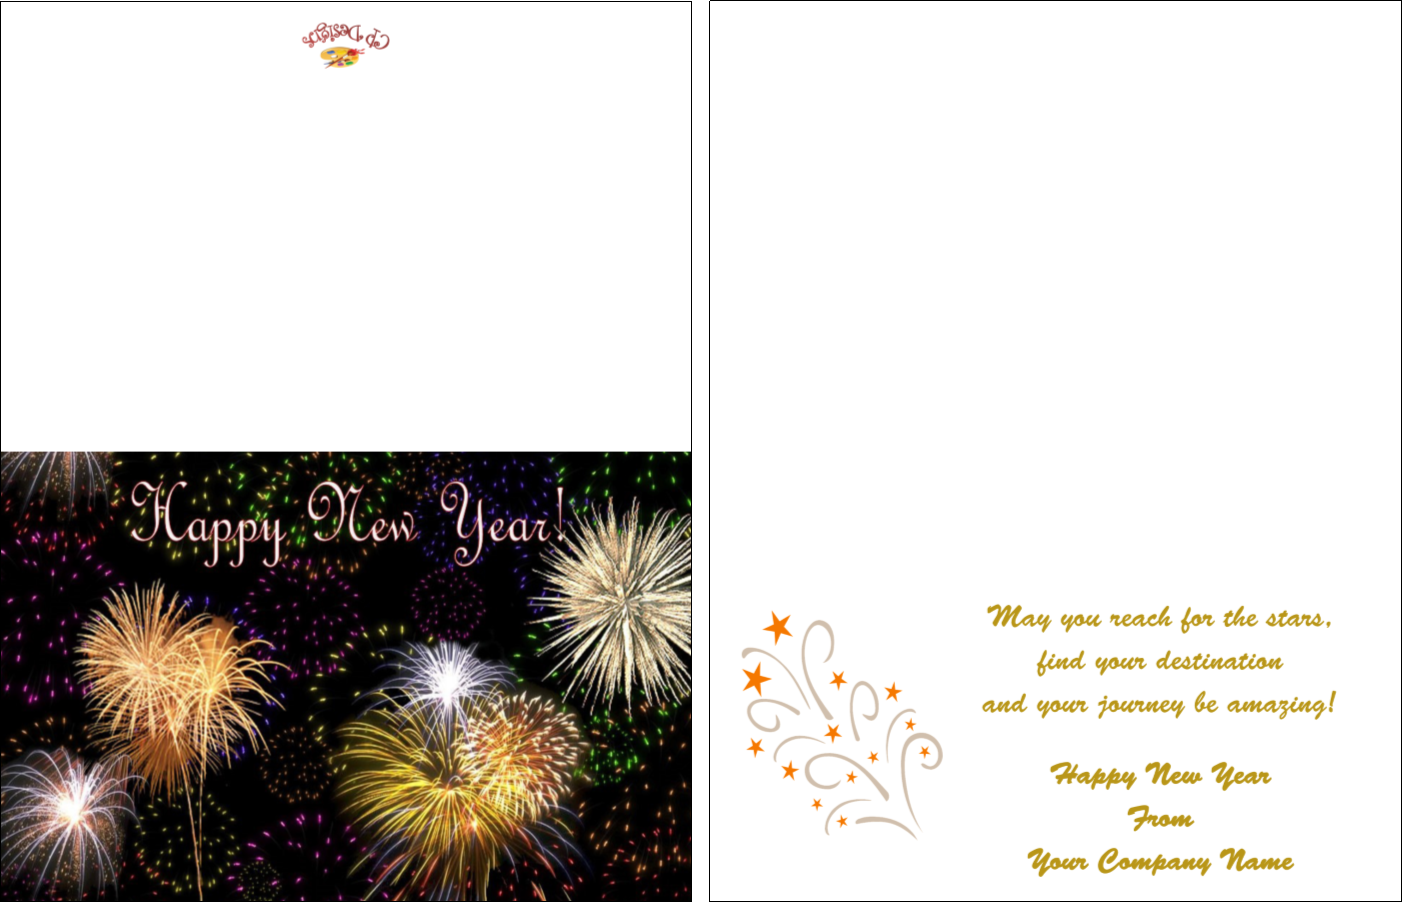 New years greeting cards creative presse new years greeting cards m4hsunfo